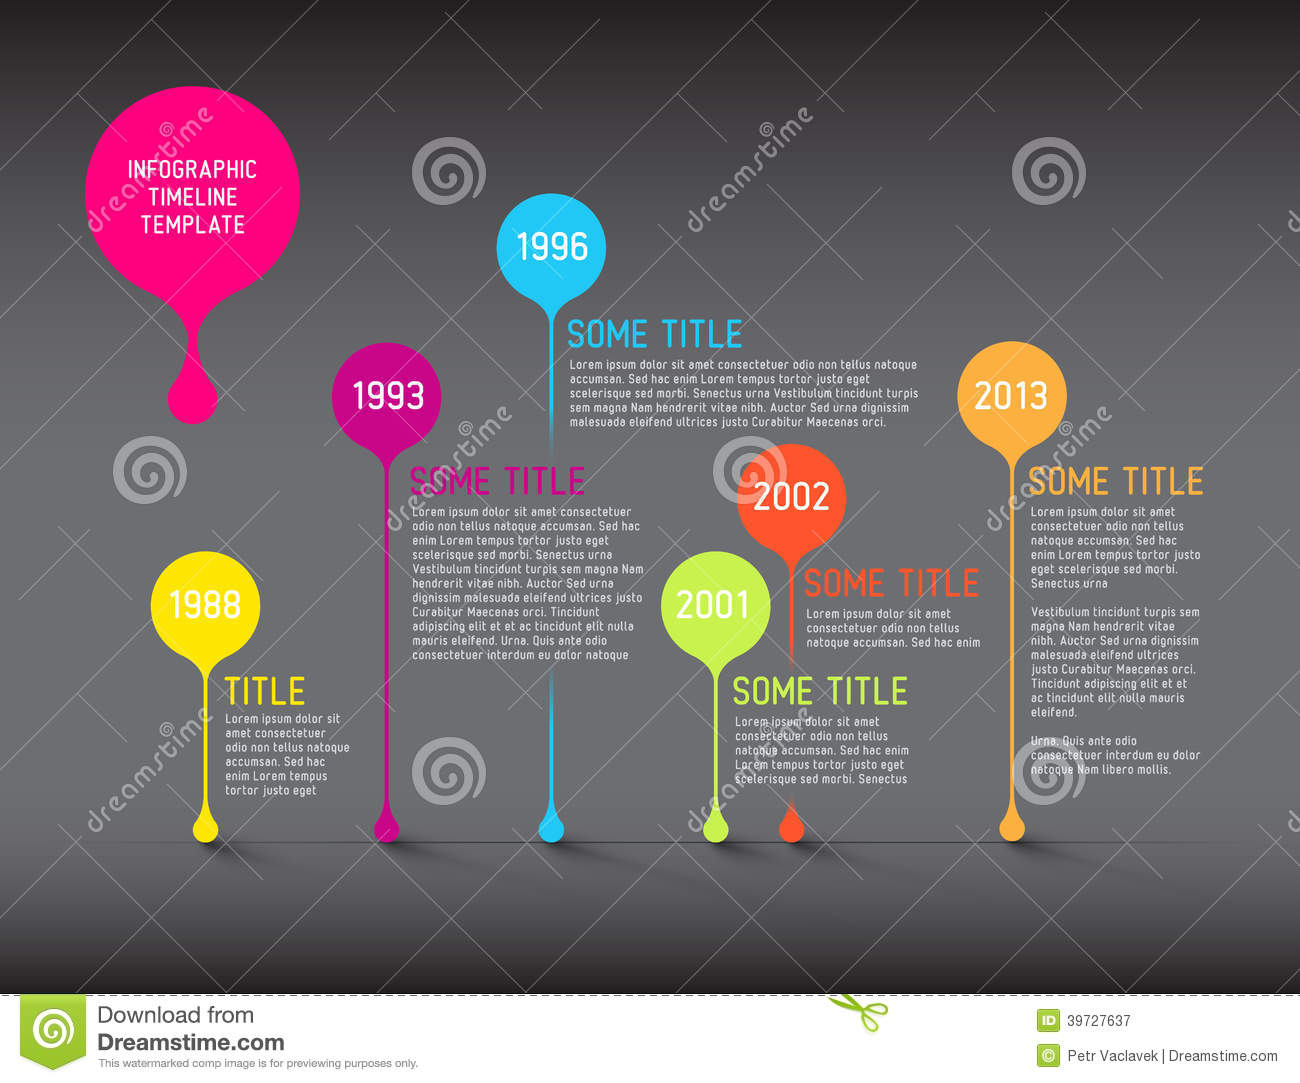 Free timeline infographic templates